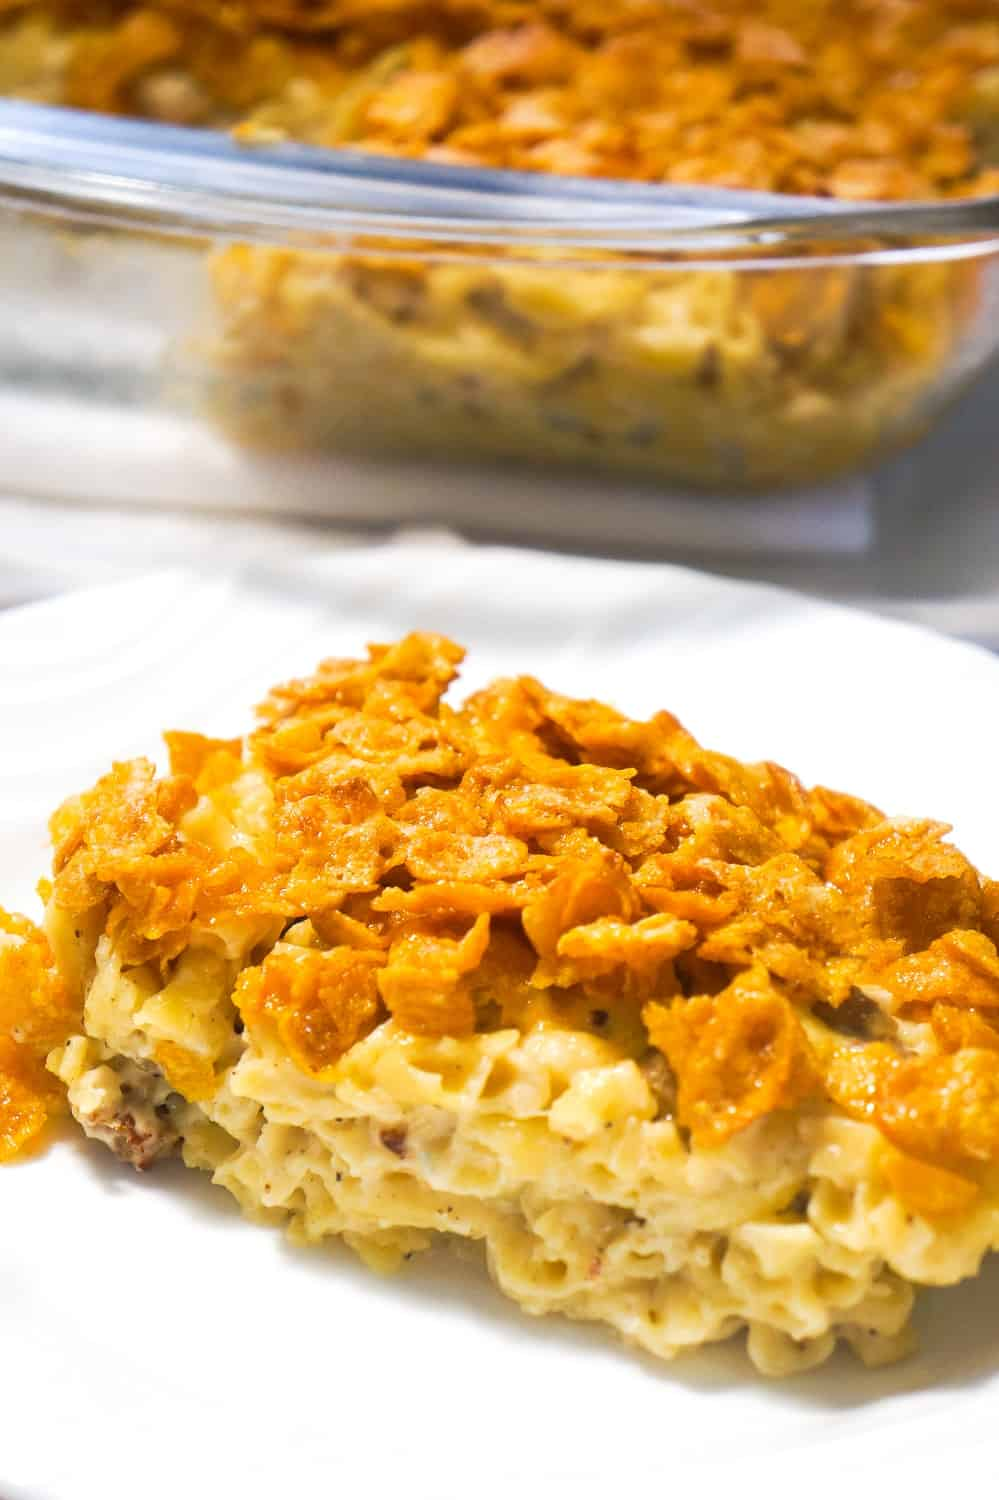 Breakfast Sausage Mac and Cheese topped with Frosted Flakes is a delicious brunch recipe with the perfect balance of savoury and sweet. This homemade macaroni and cheese is loaded with Havarti cheese and chunks of maple breakfast sausages with a crispy coating of frosted flakes.